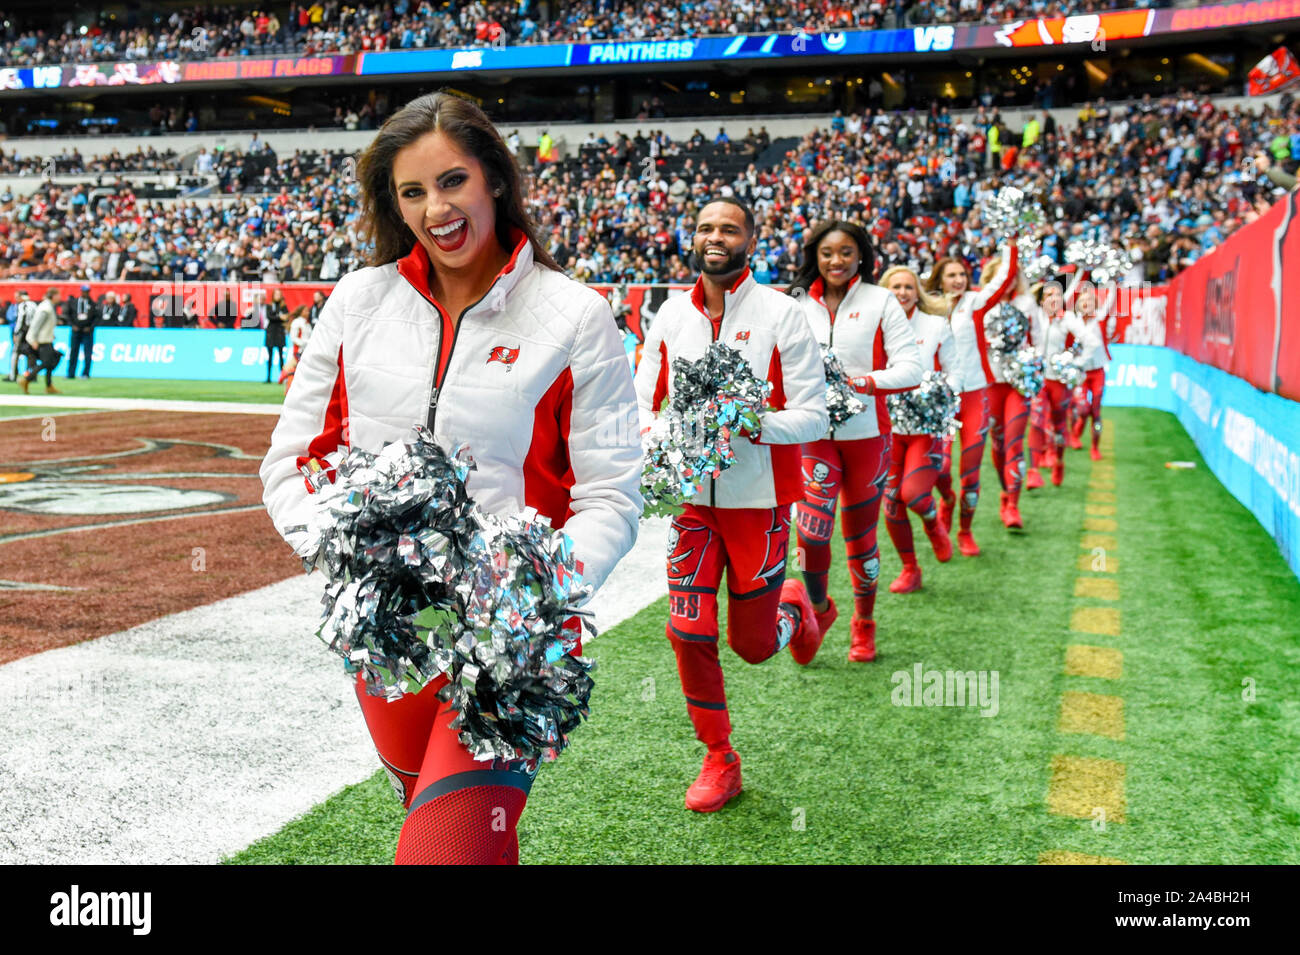 London, UK.  13 October 2019. Buccaneers cheerleaders ahead of the NFL match Tampa Bay Buccaneers v Carolina Panthers at Tottenham Hotspur Stadium. Final score Buccaneers 26, Panthers 37.   Credit: Stephen Chung / Alamy Live News Stock Photo